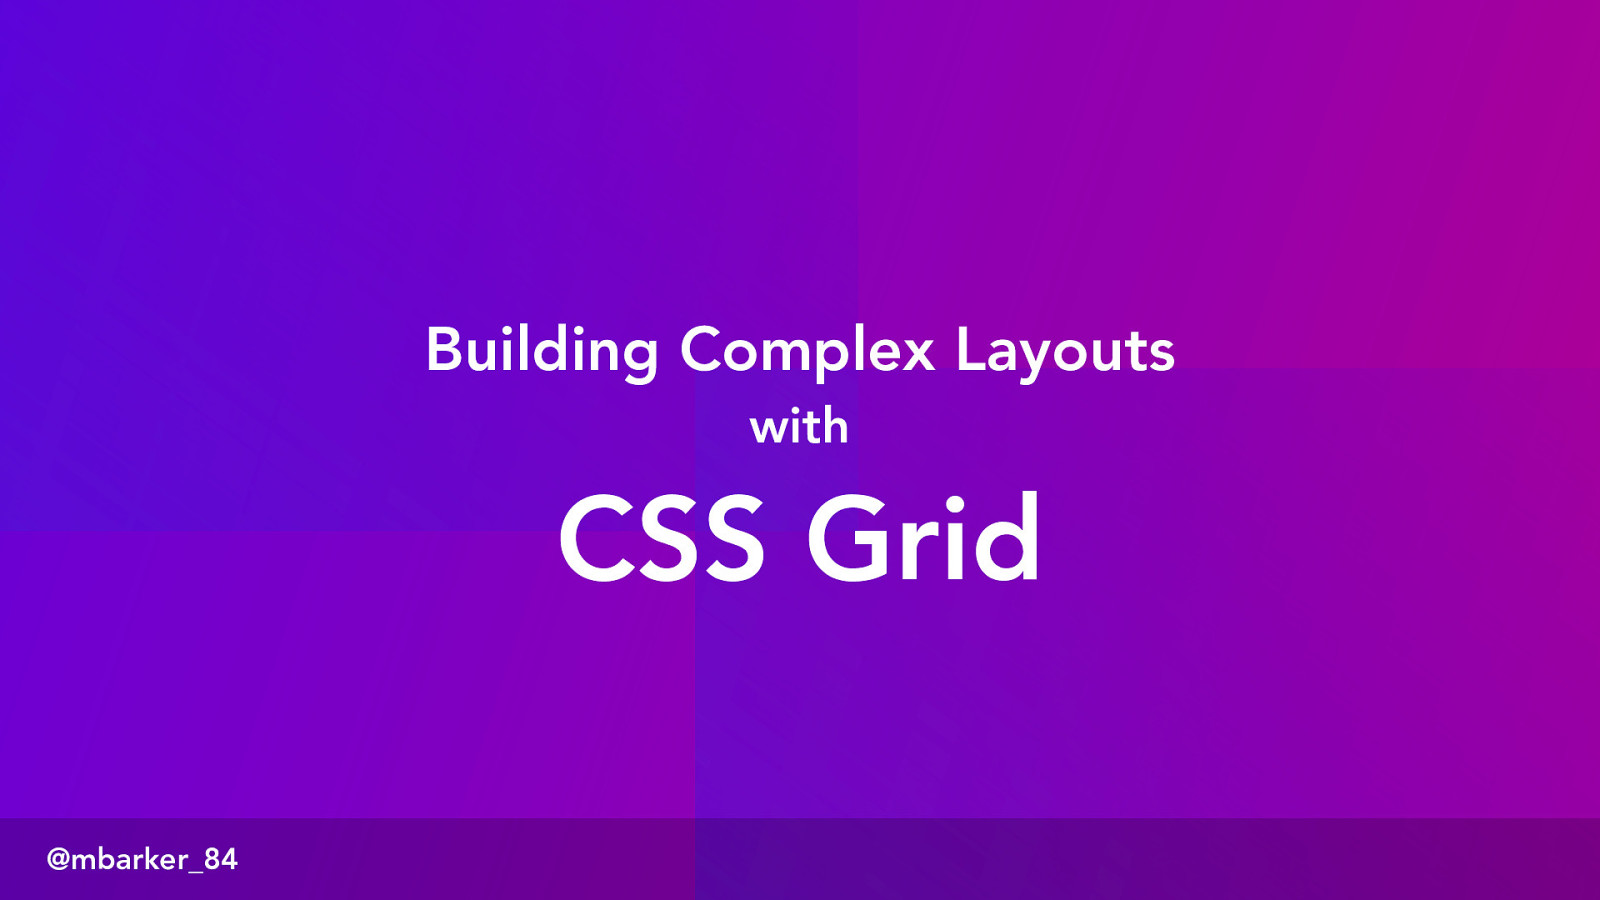 Building Complex Layouts with CSS Grid